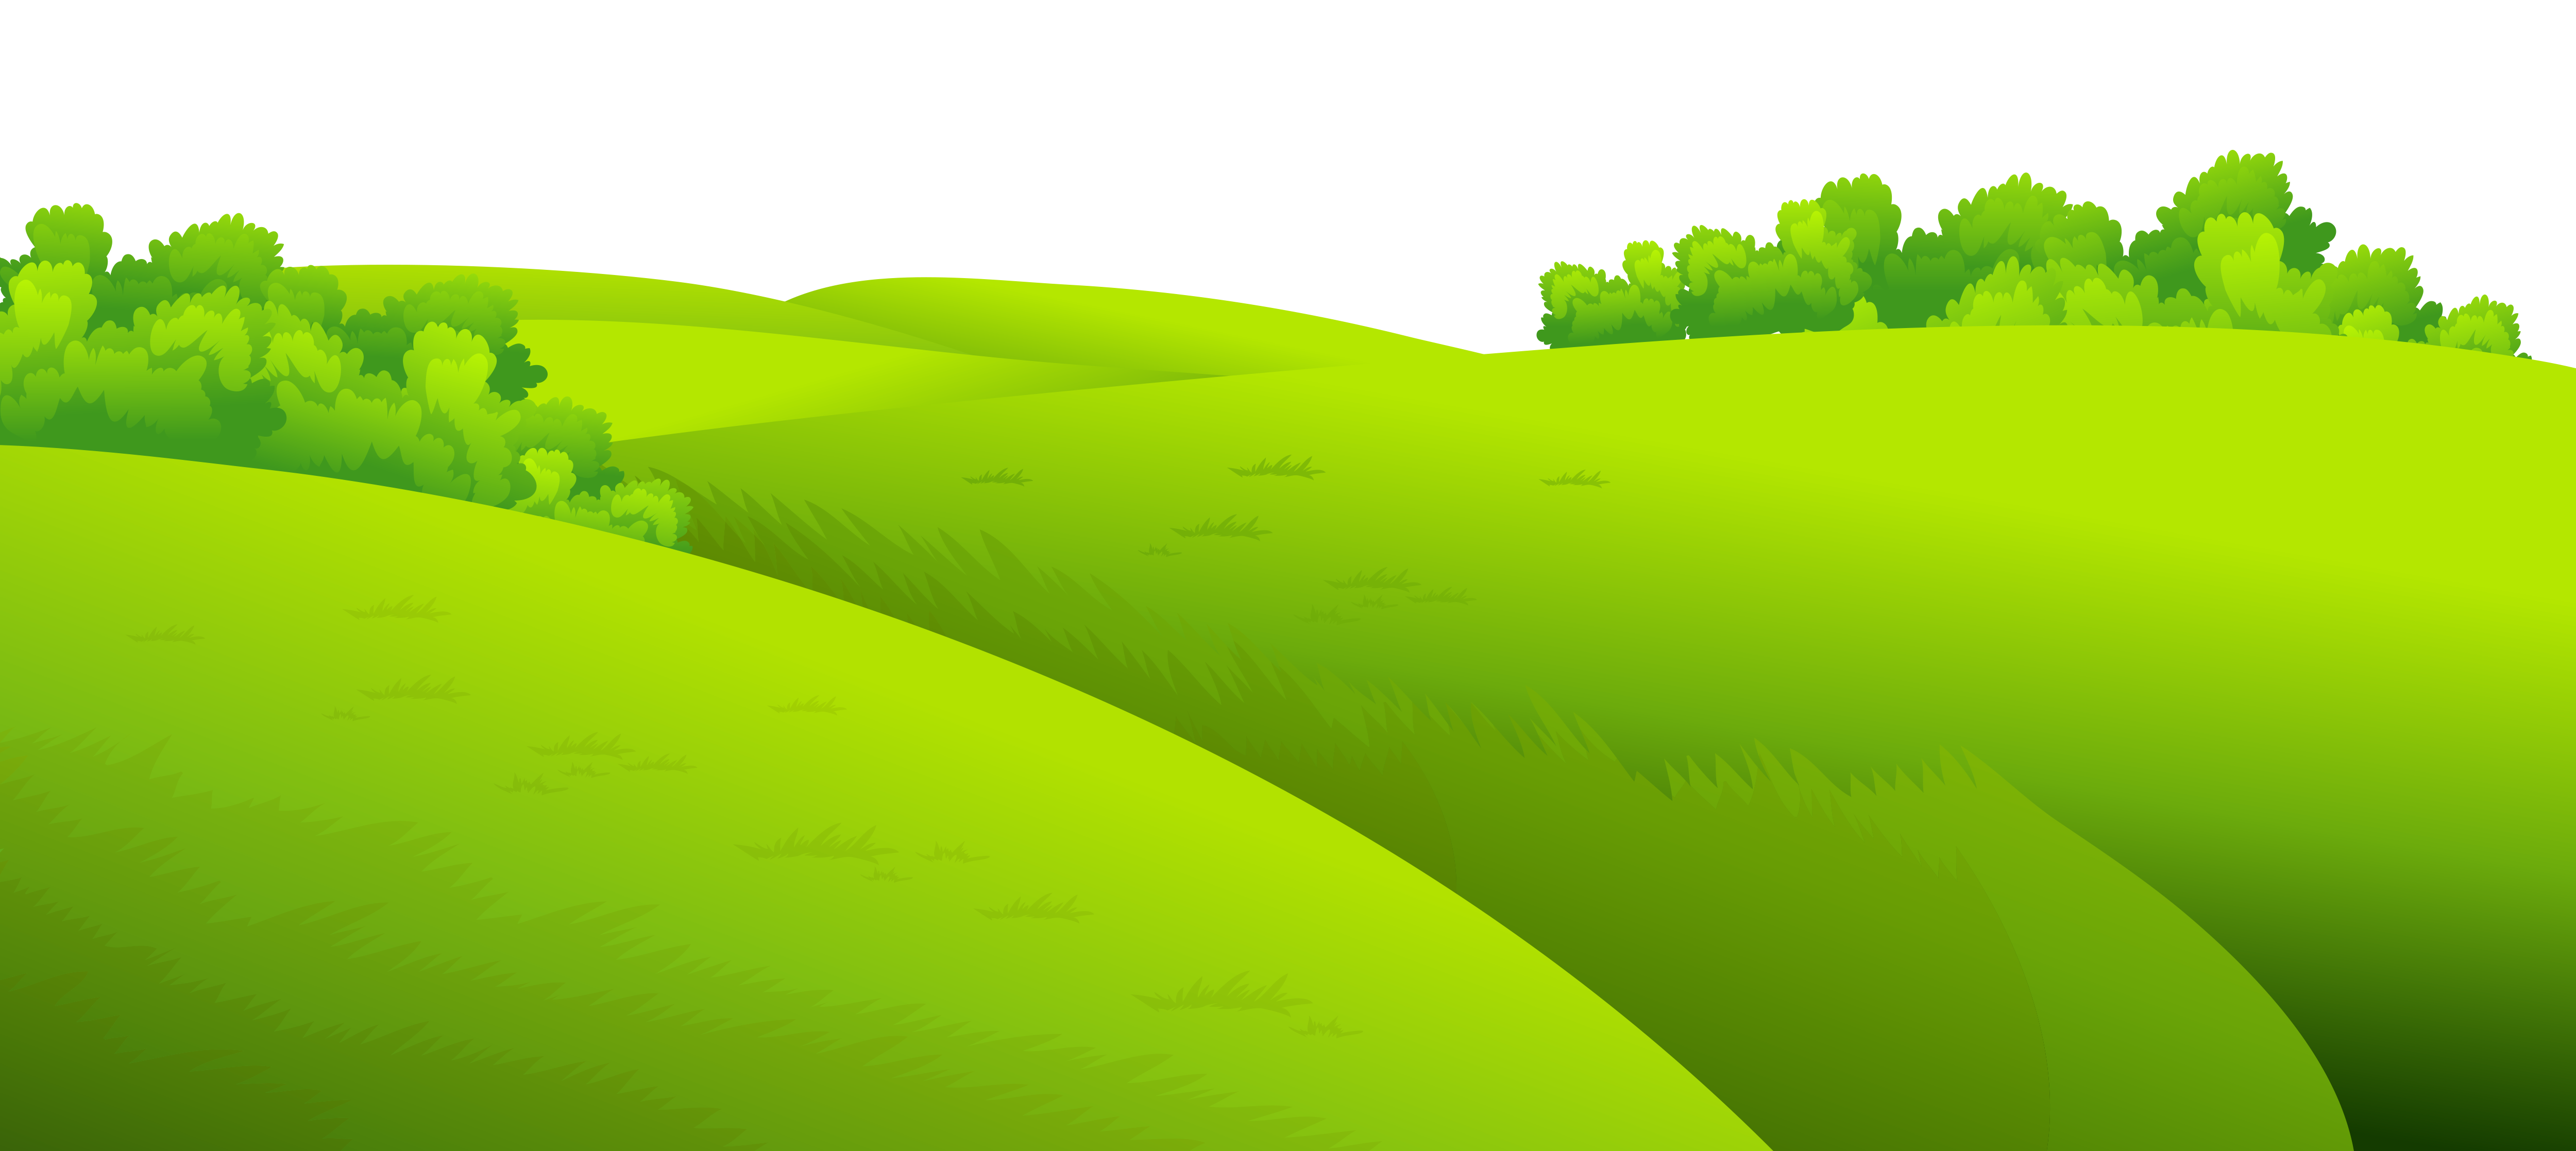 Green background download free clipart with a transparent.